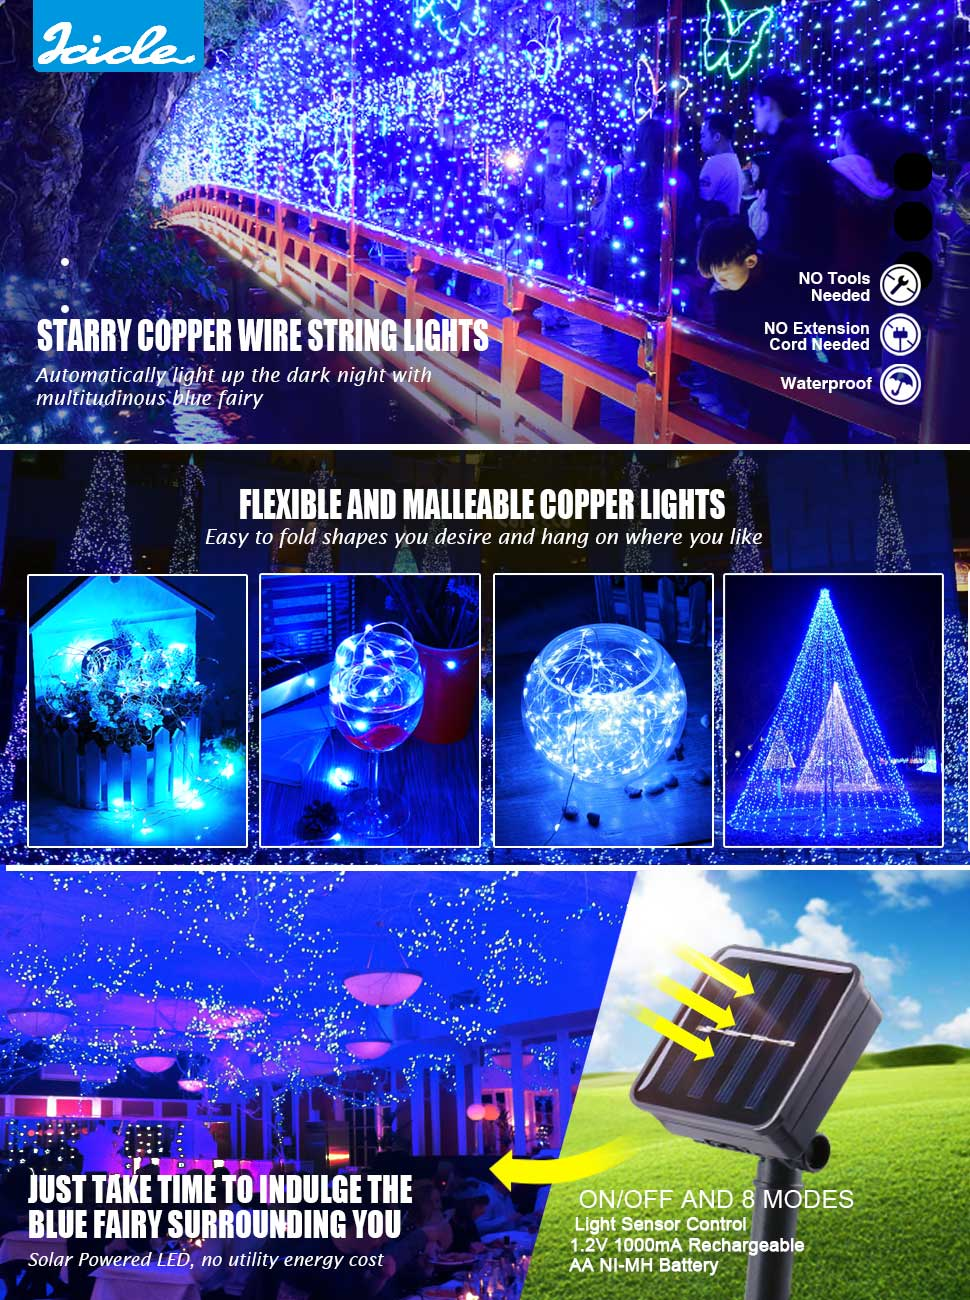 Icicle solar powered string light 26ft 120led flexible copper wire icicle solar powered string light 26ft 120led flexible copper wire indoor outdoor waterproof decorative light for patio path lawn garden pergola aloadofball Image collections